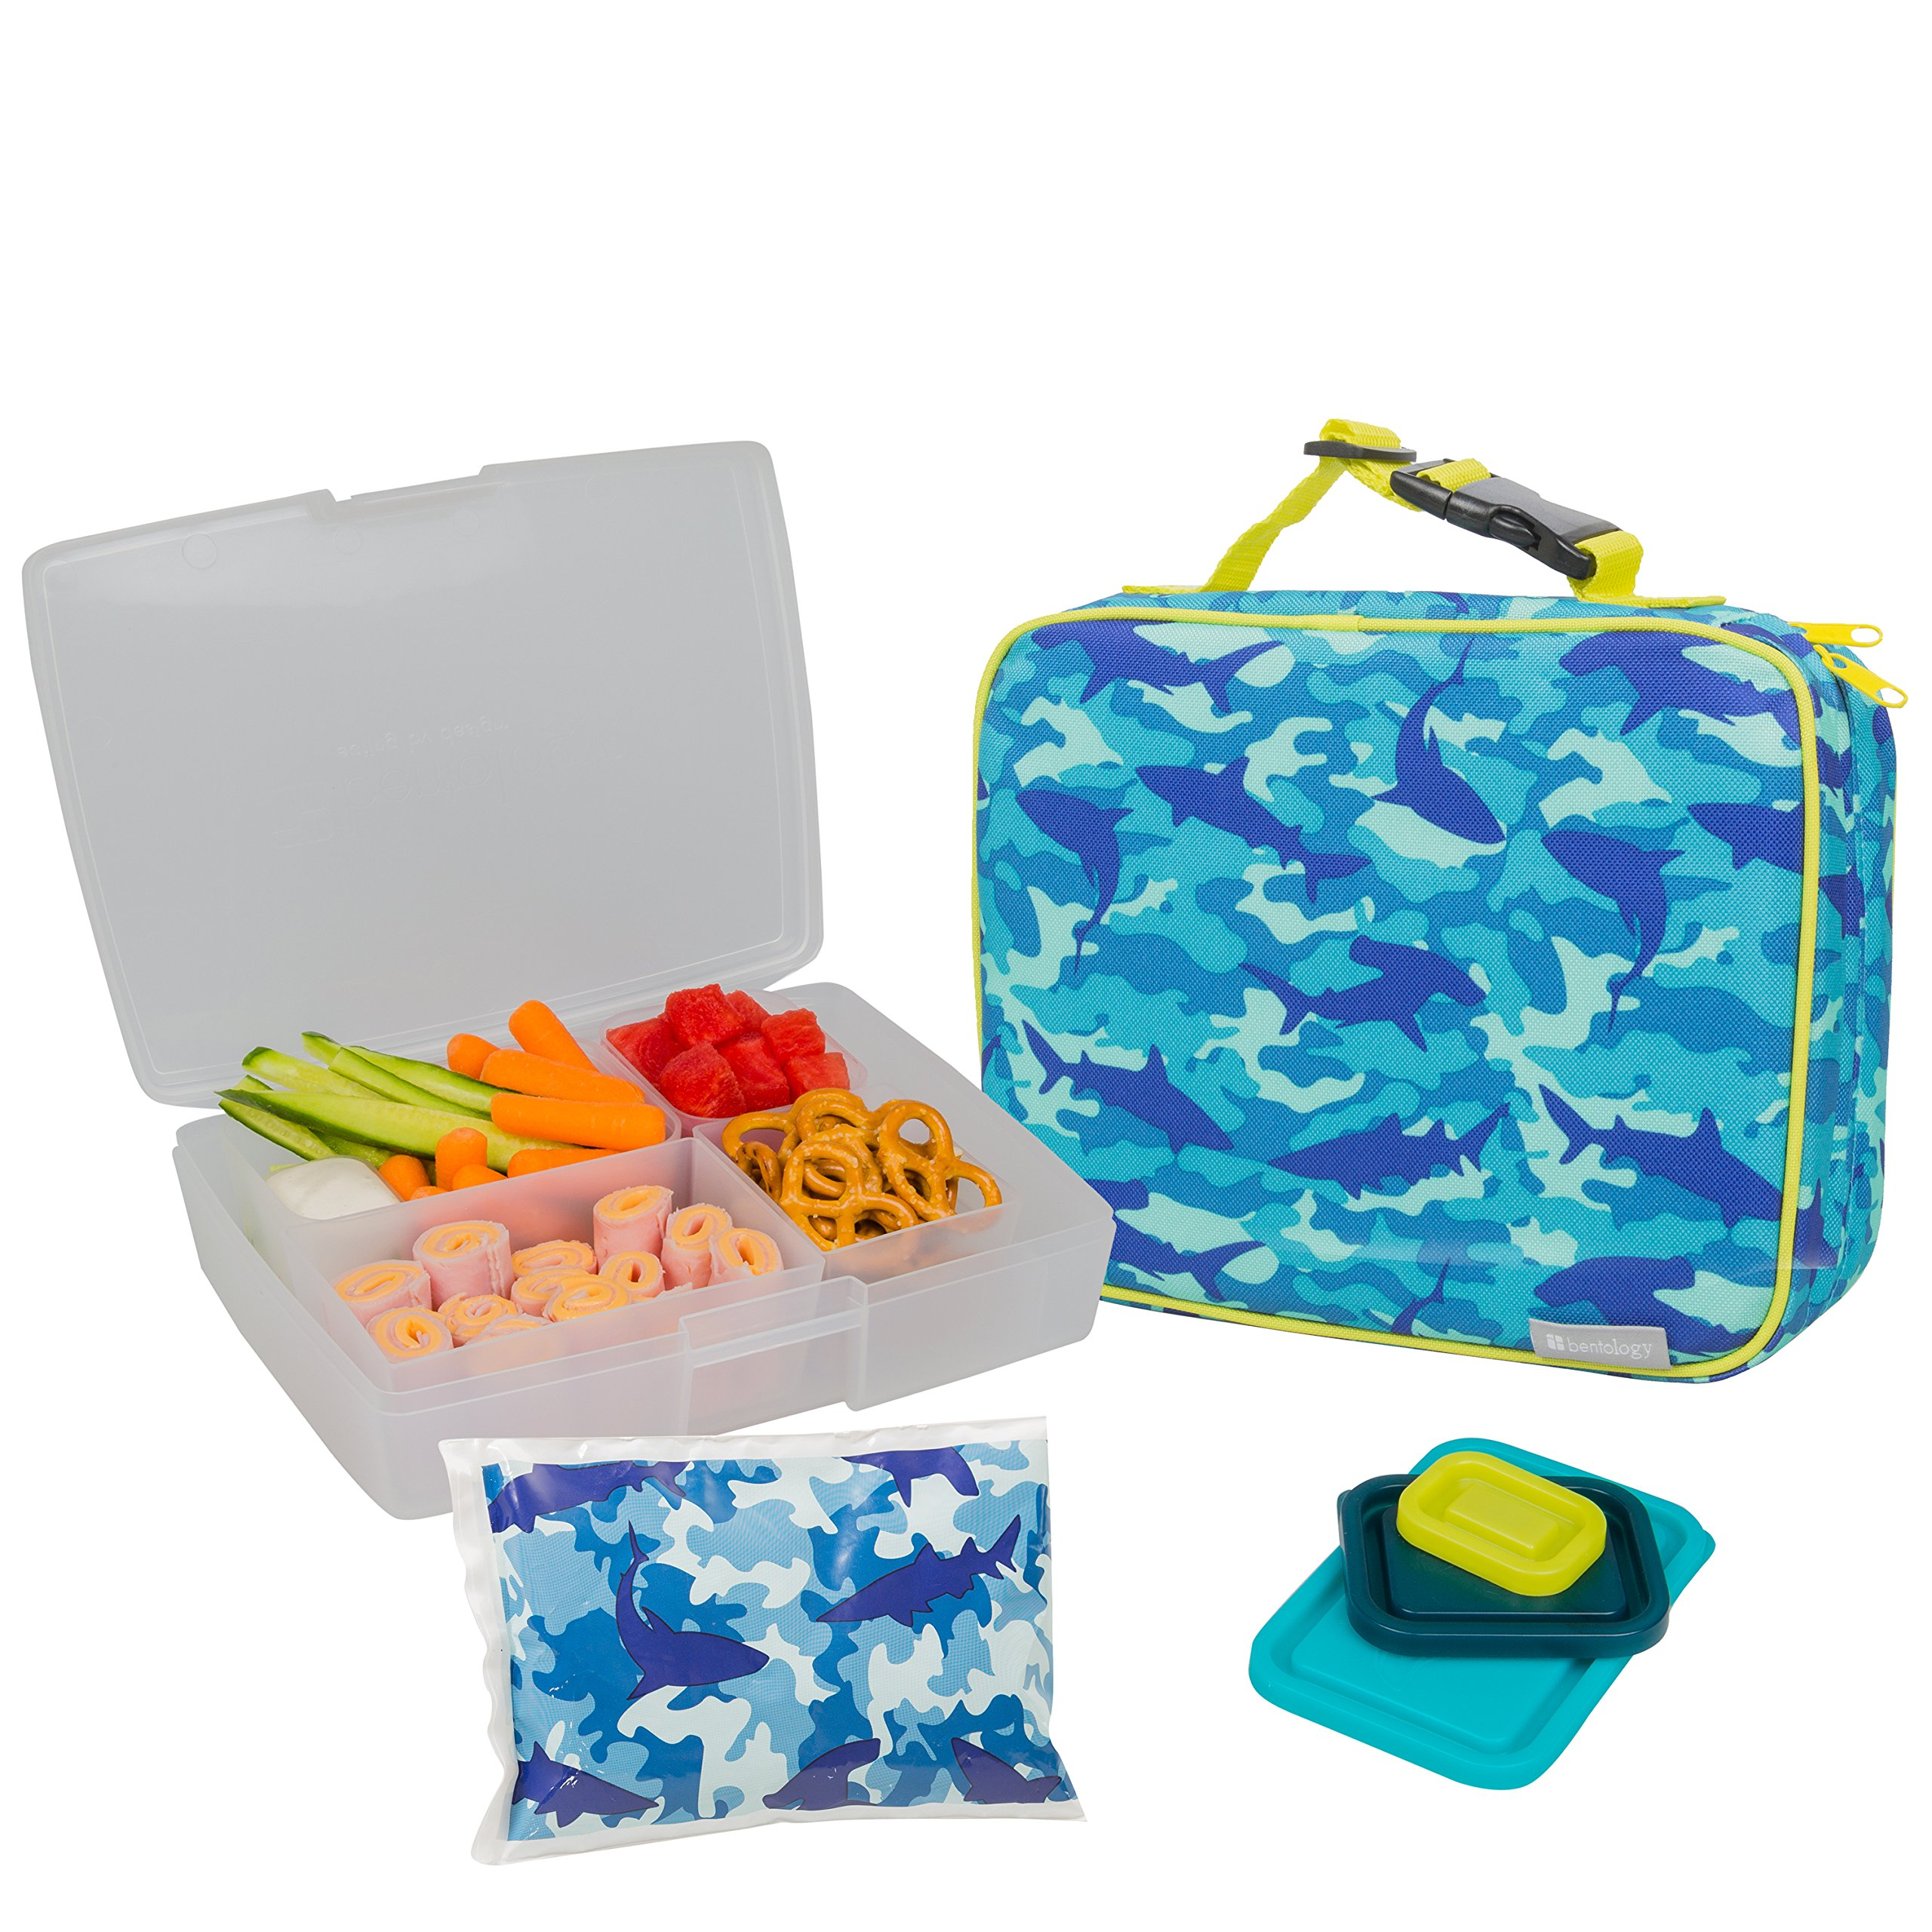 Bag Of Ice Price Buy Bentology Lunch Bag And Box Set For Boys Includes Insulated